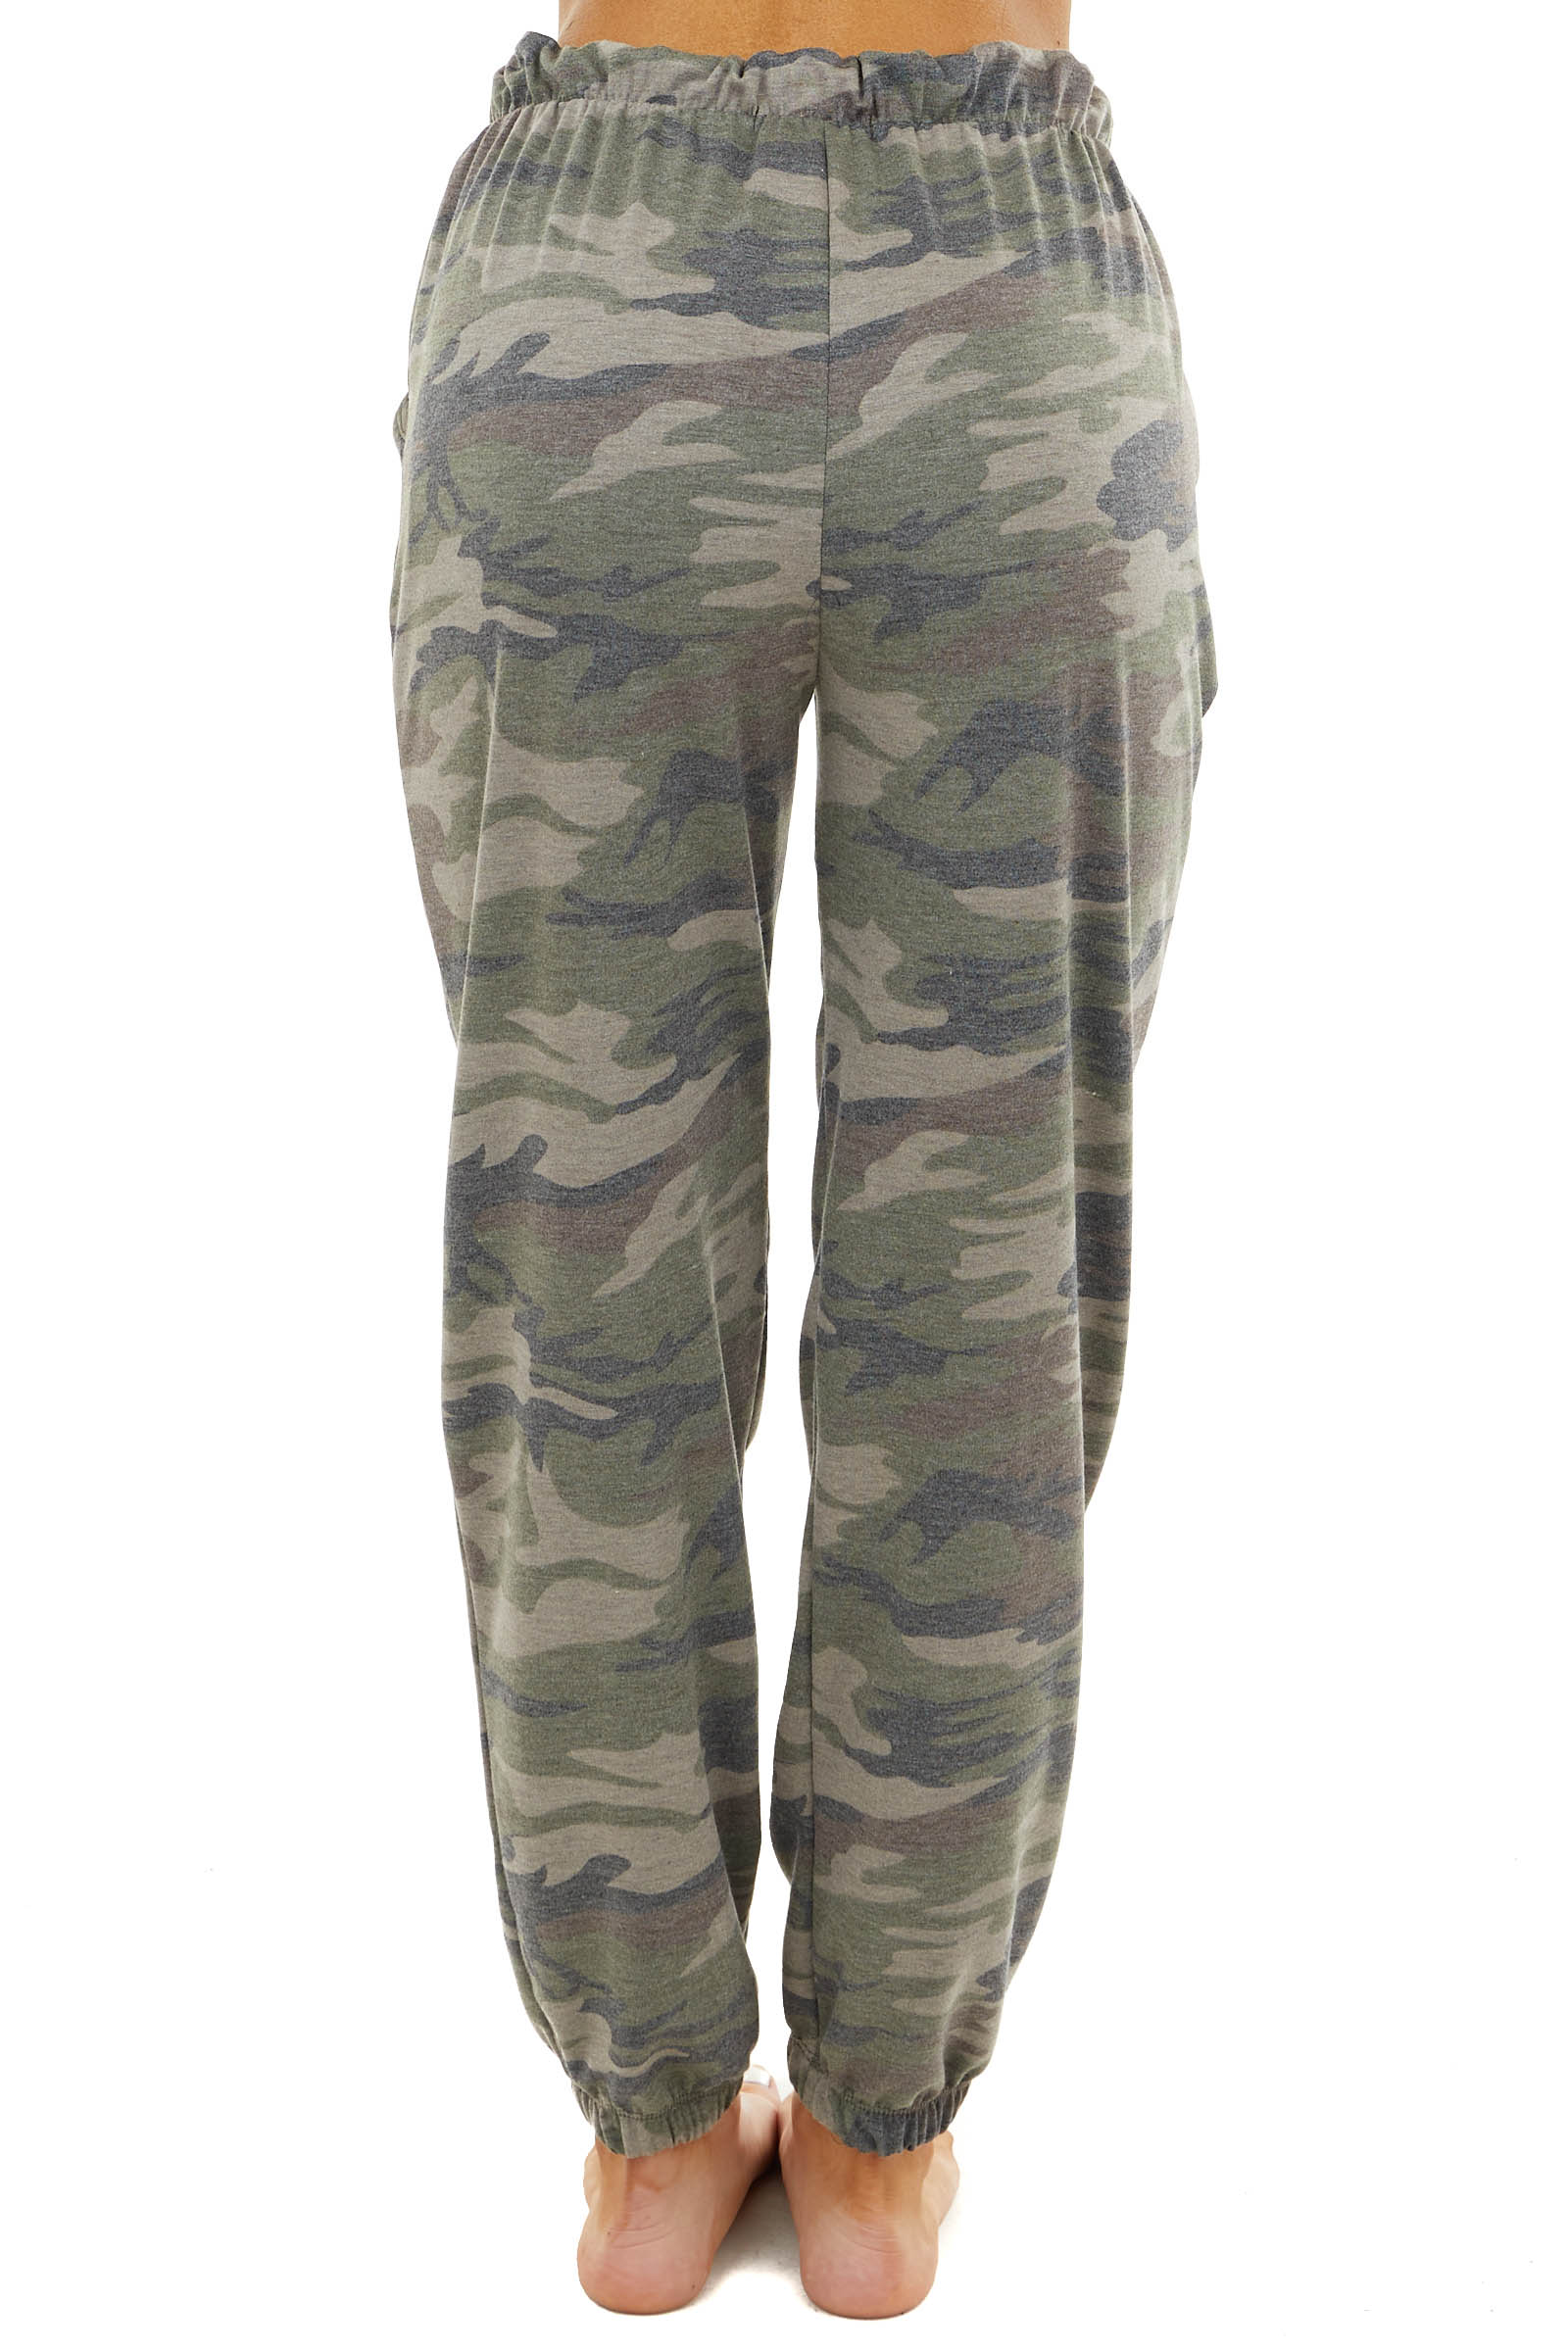 Dusty Olive Camo Print Joggers with Elastic Waist